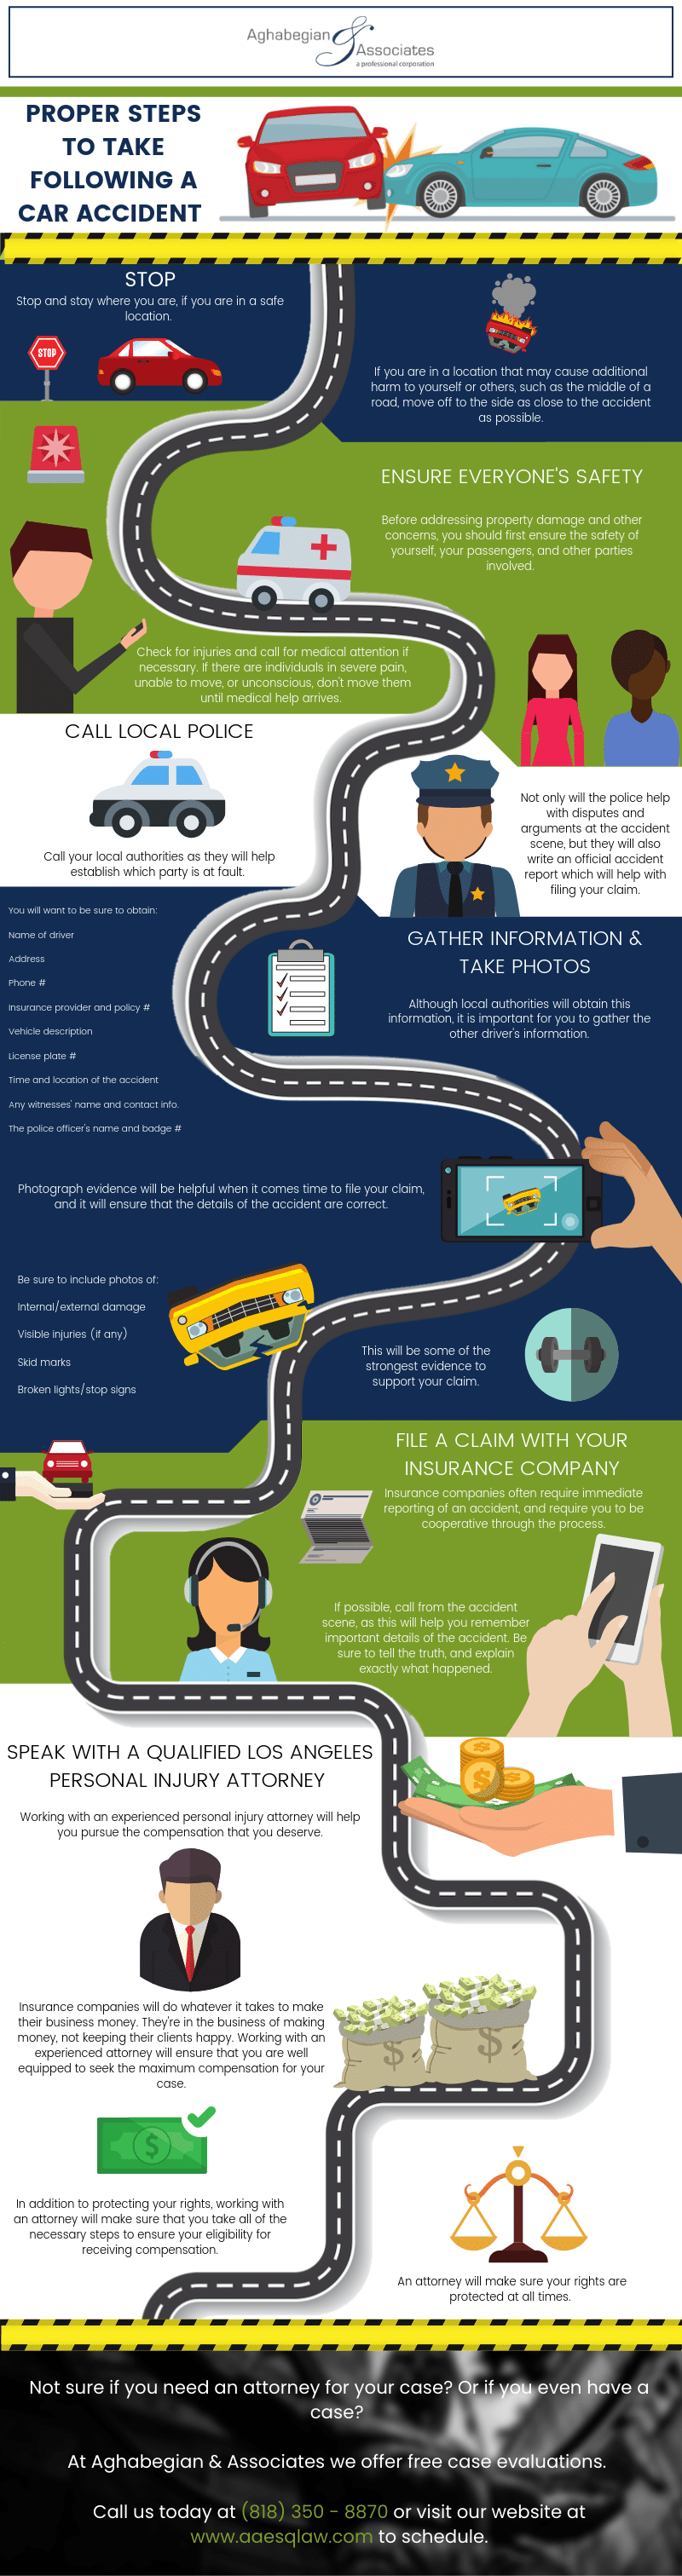 Proper Steps To Take Following an Accident